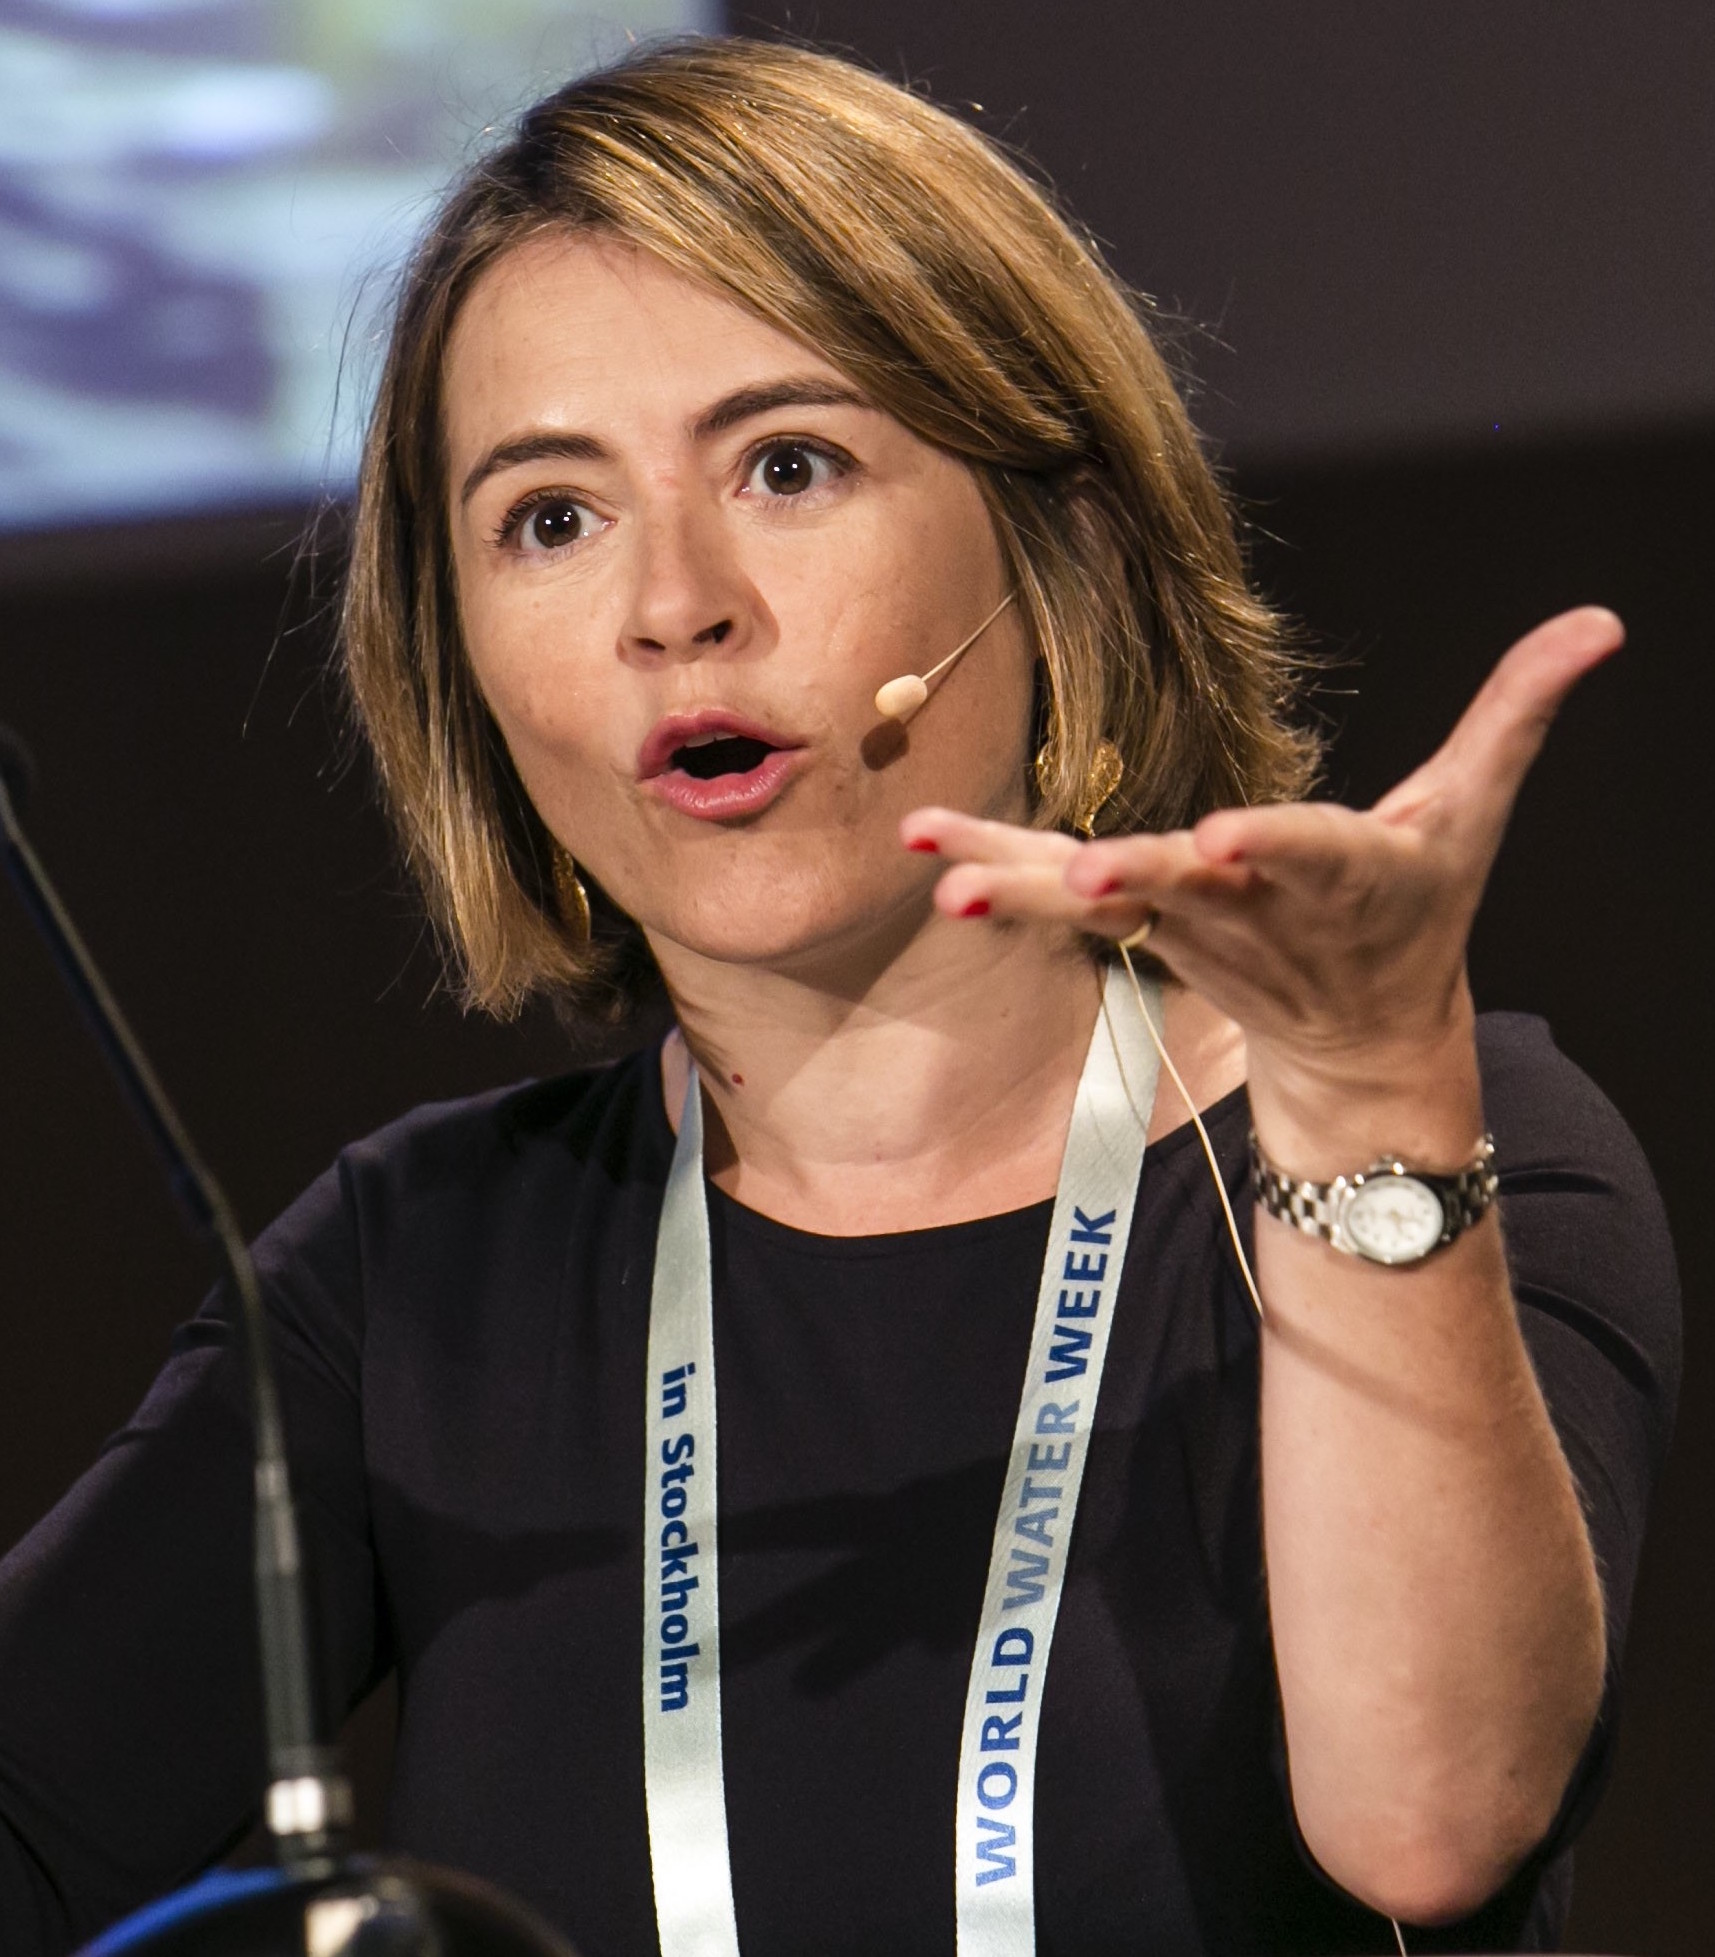 Catarina de Albuquerque, SWA CEO